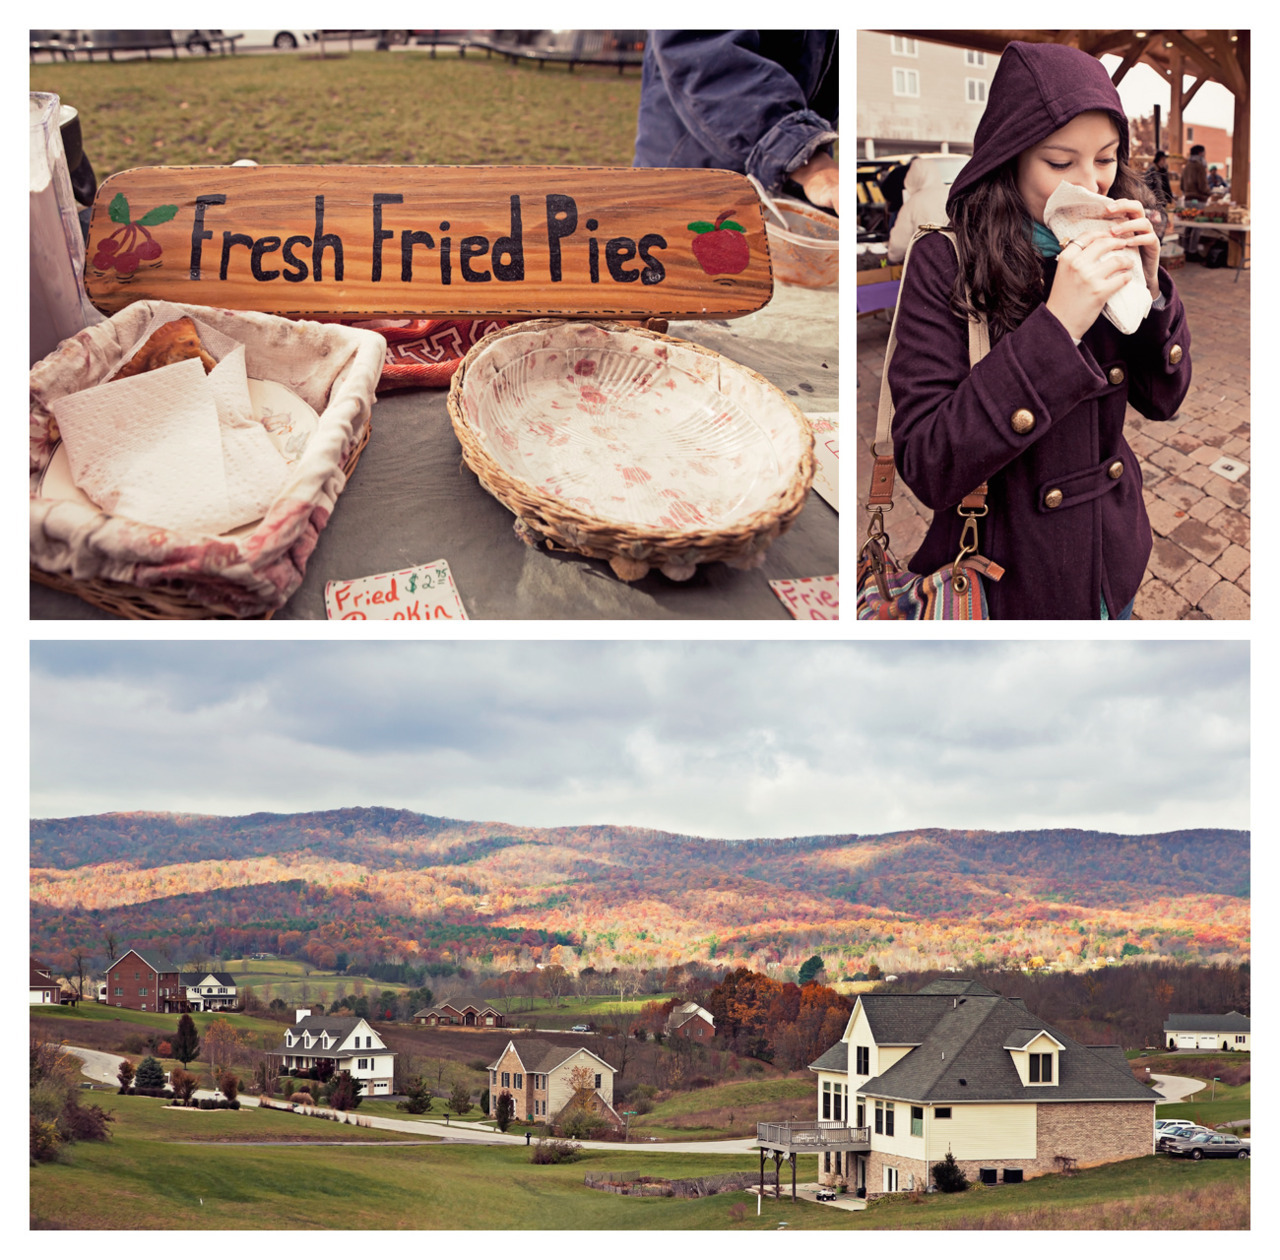 Blacksburg Collage on Flickr. Virginia Tech | Blacksburg, VA | October 29, 2011  For Halloween weekend, I decided to visit an old high school friend at Virginia Tech. Despite a miserable drive through rain and sleet on Friday night, the weather was actually pretty nice on Saturday and we managed to see the mountain ranges and even stop by a farmer's market in downtown Blacksburg. Be on the look out for more photos from around Blacksburg and the Virginia Tech campus in the near future!Top Left Photo: A sign advertising delicious made-to-order fried pies. Holly and I both ended up purchasing pies with apple filling. Top Right Photo: Holly enjoying her fresh fried pie. Bottom Photo: A view of the Blue Ridge Mountains from Prices Fork Road between Blacksburg and Christiansburg.   Check me out on my other sites: BrandonHambright.com // Facebook // Twitter // Youtube // Flickr